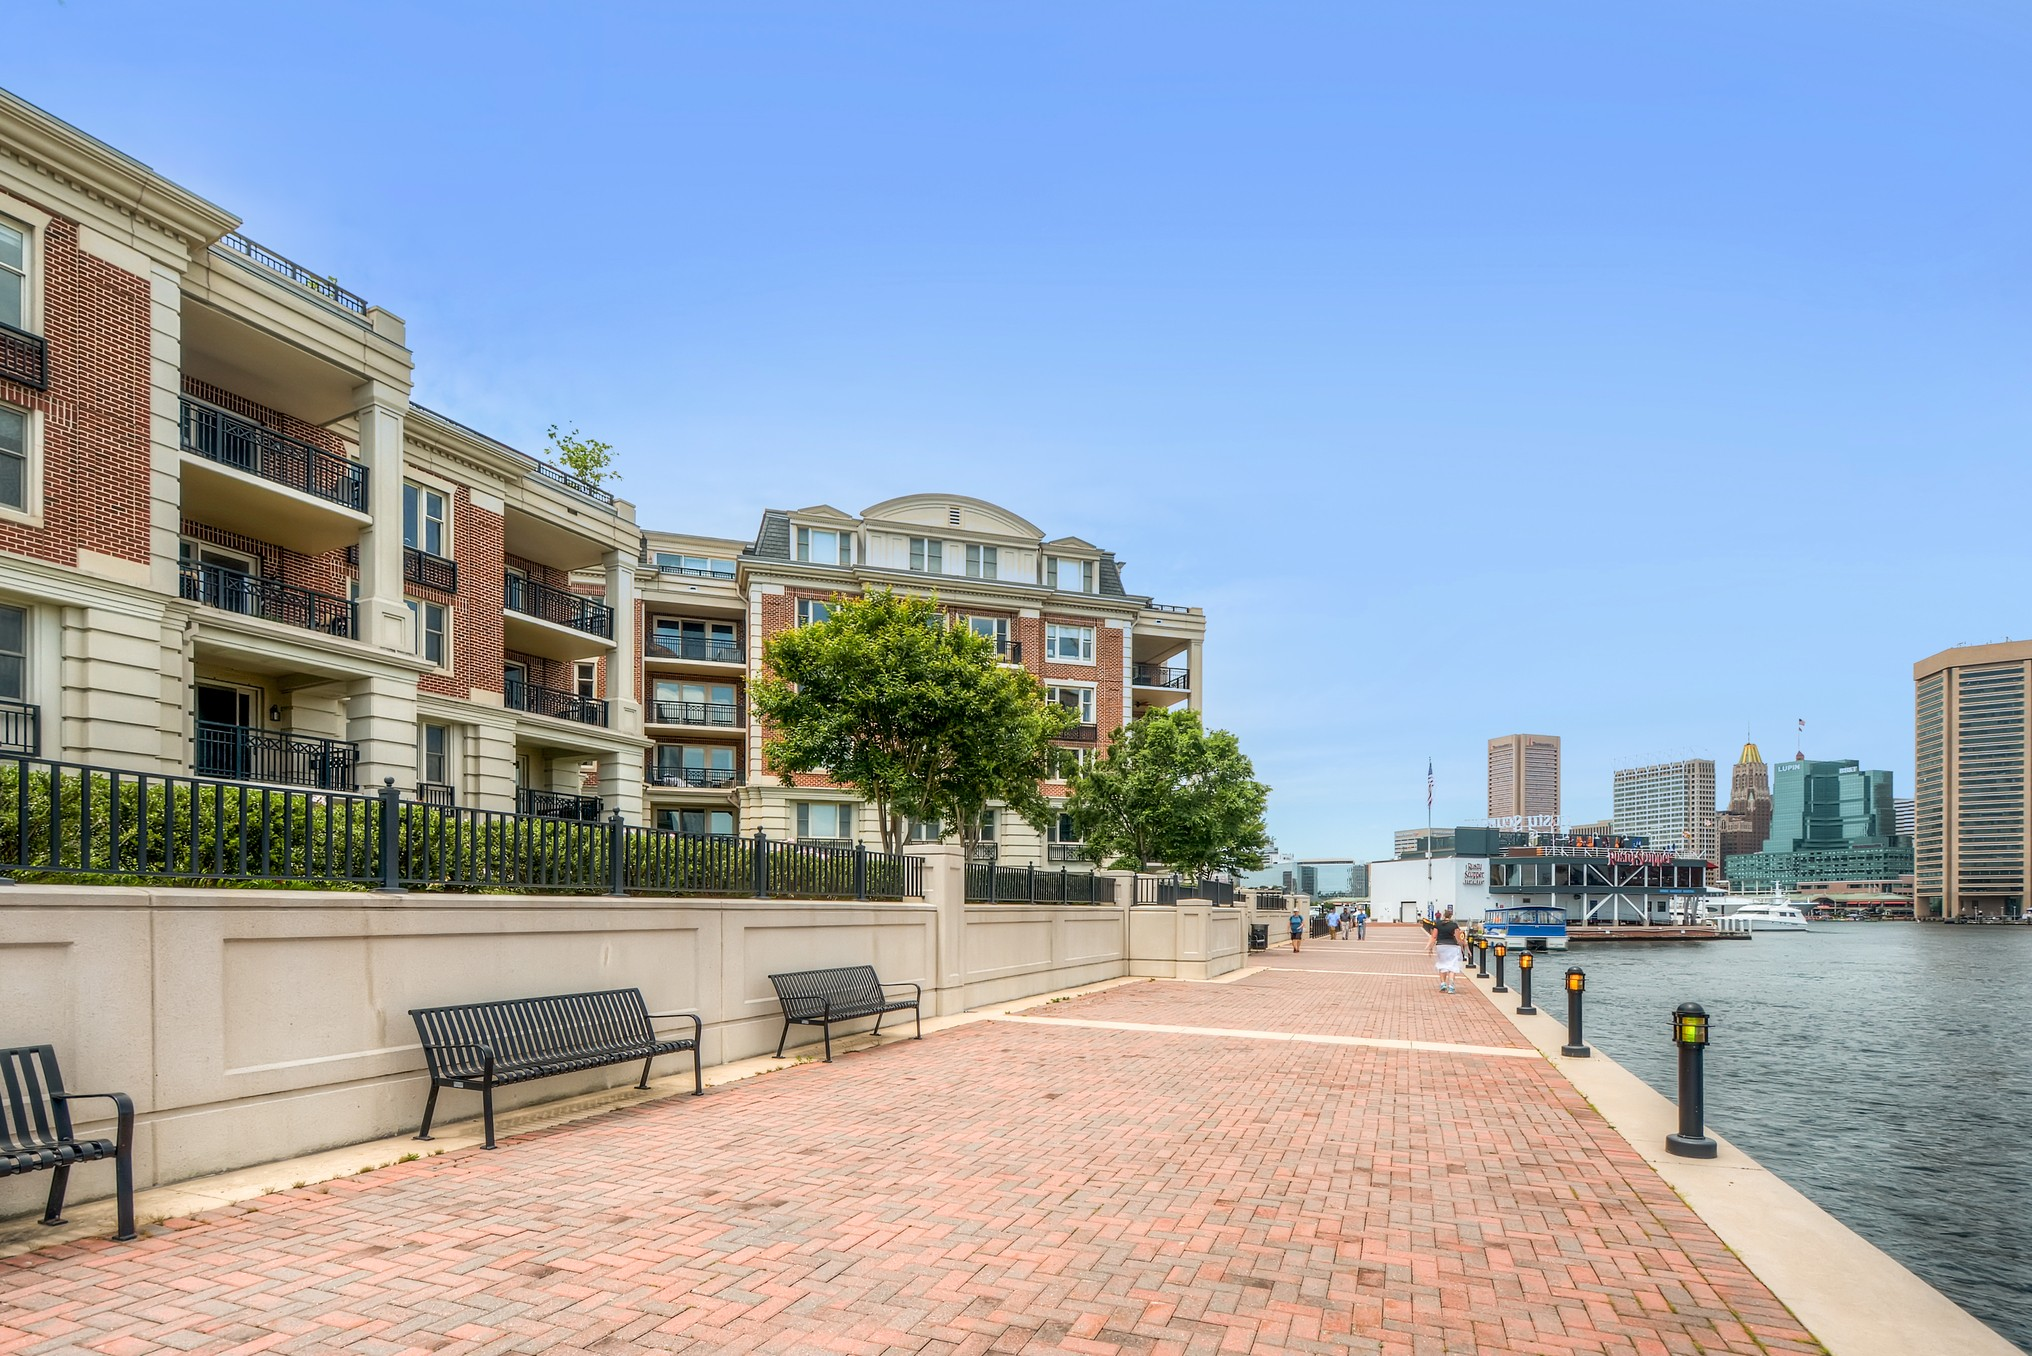 801 key hwy 411 baltimore md 21230 2 bedroom condo for rent for 5 900 month zumper